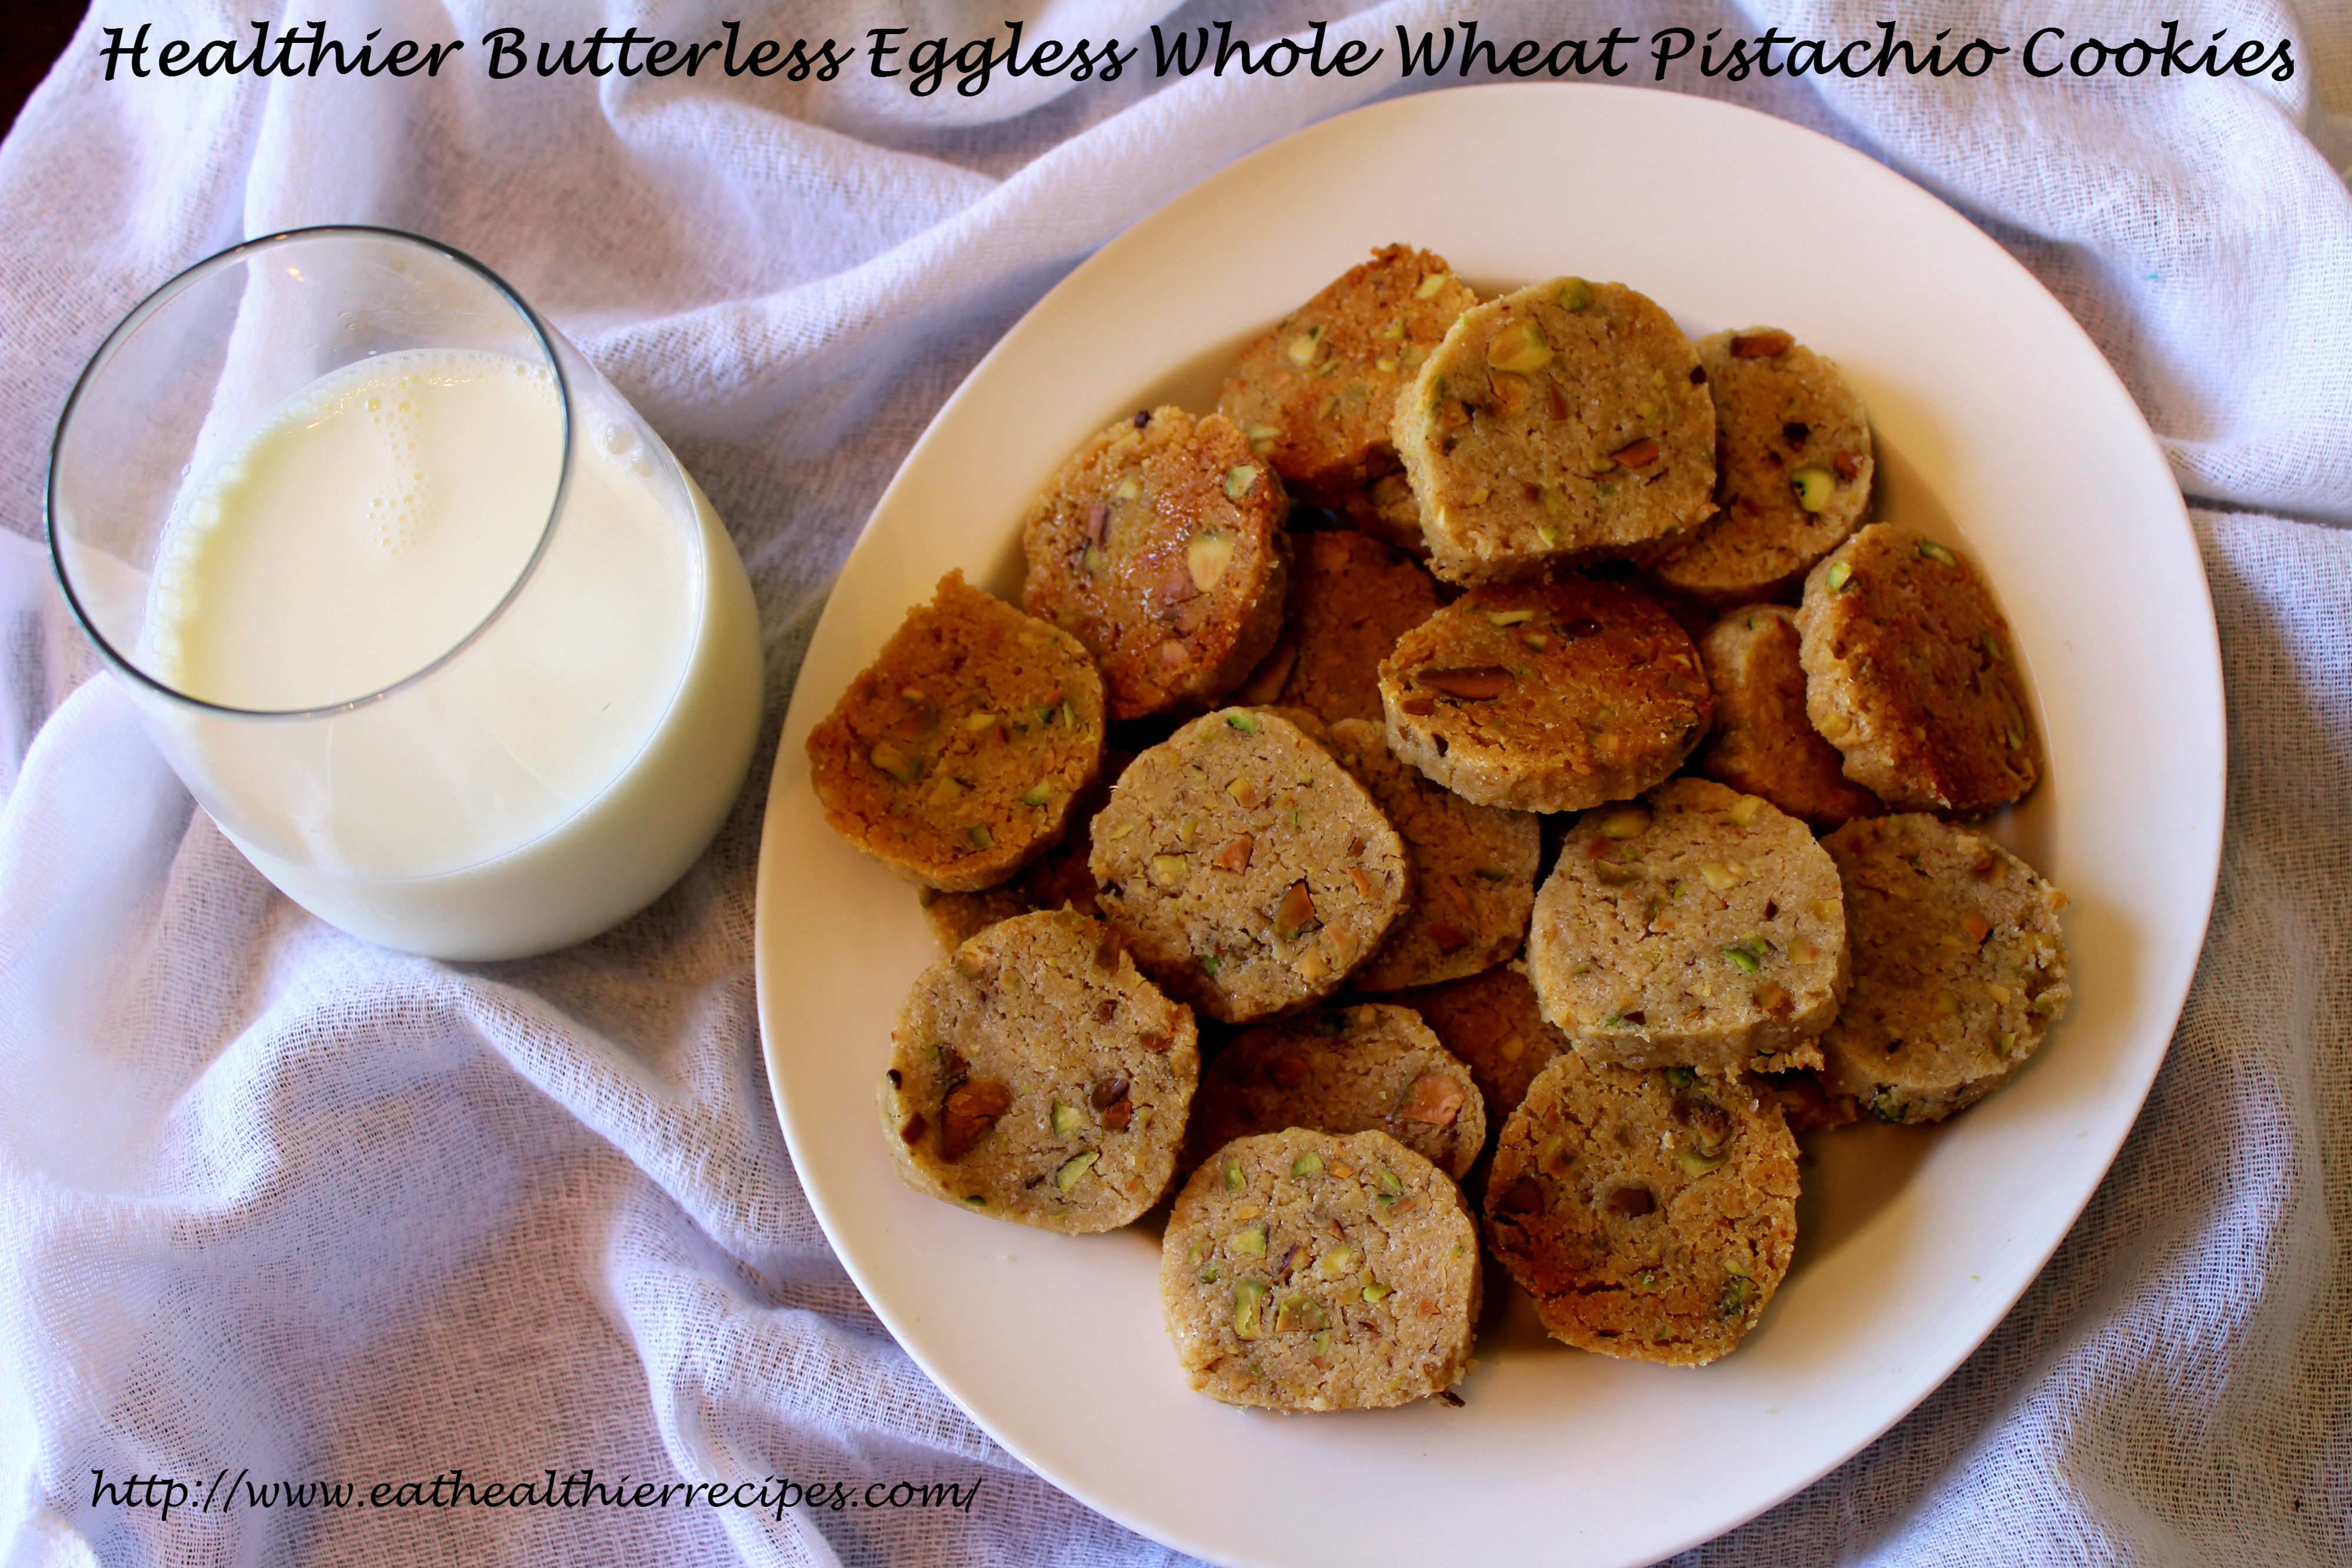 Healthier Butterless Eggless Whole Wheat Pistachio Cookies.